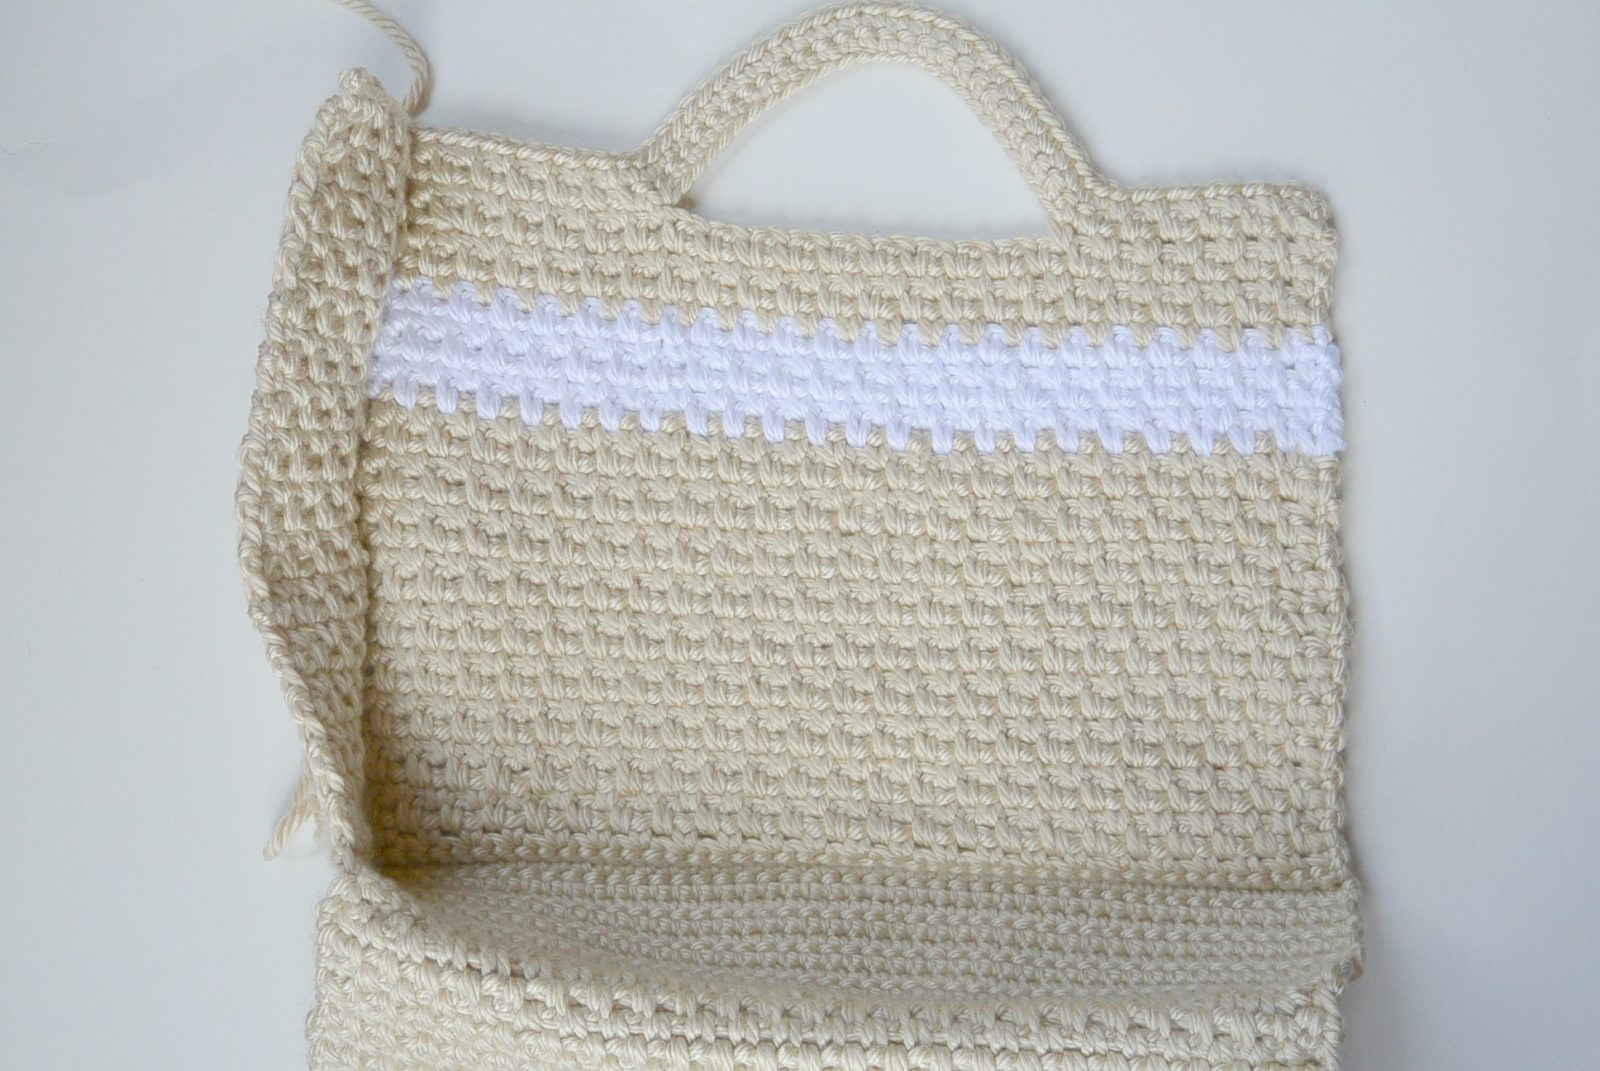 Crochet Bag Pattern Easy : This is how the purse looks when it is coming together. You start with ...